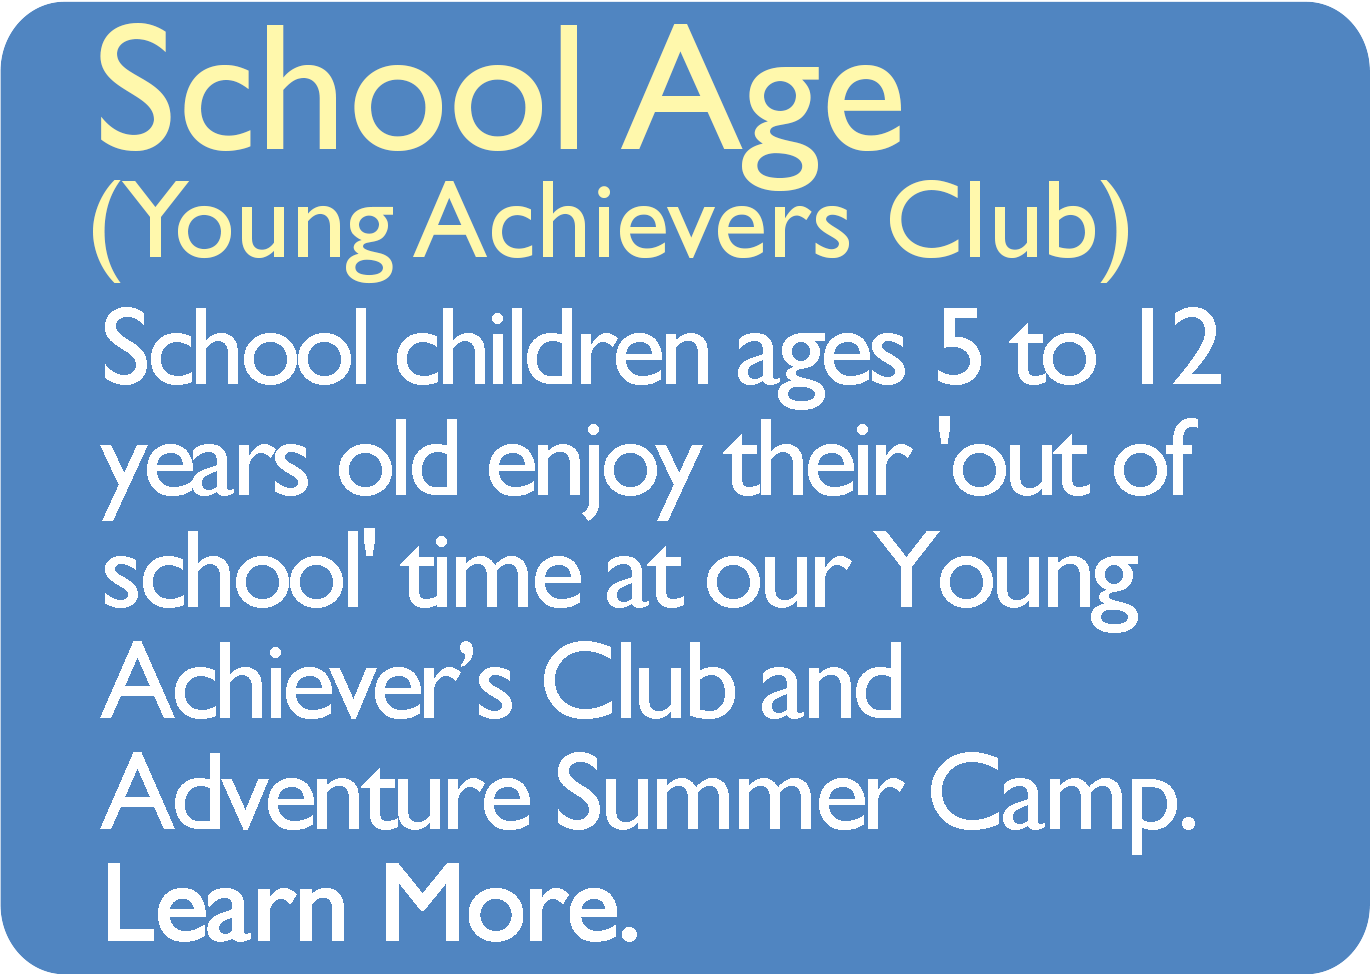 School Age (Young Achiever's Club) School children ages 5 to 12 years old enjoy their 'out of school' time at our Young Achiever's Club and Adventure Summer Camp. Learn More.